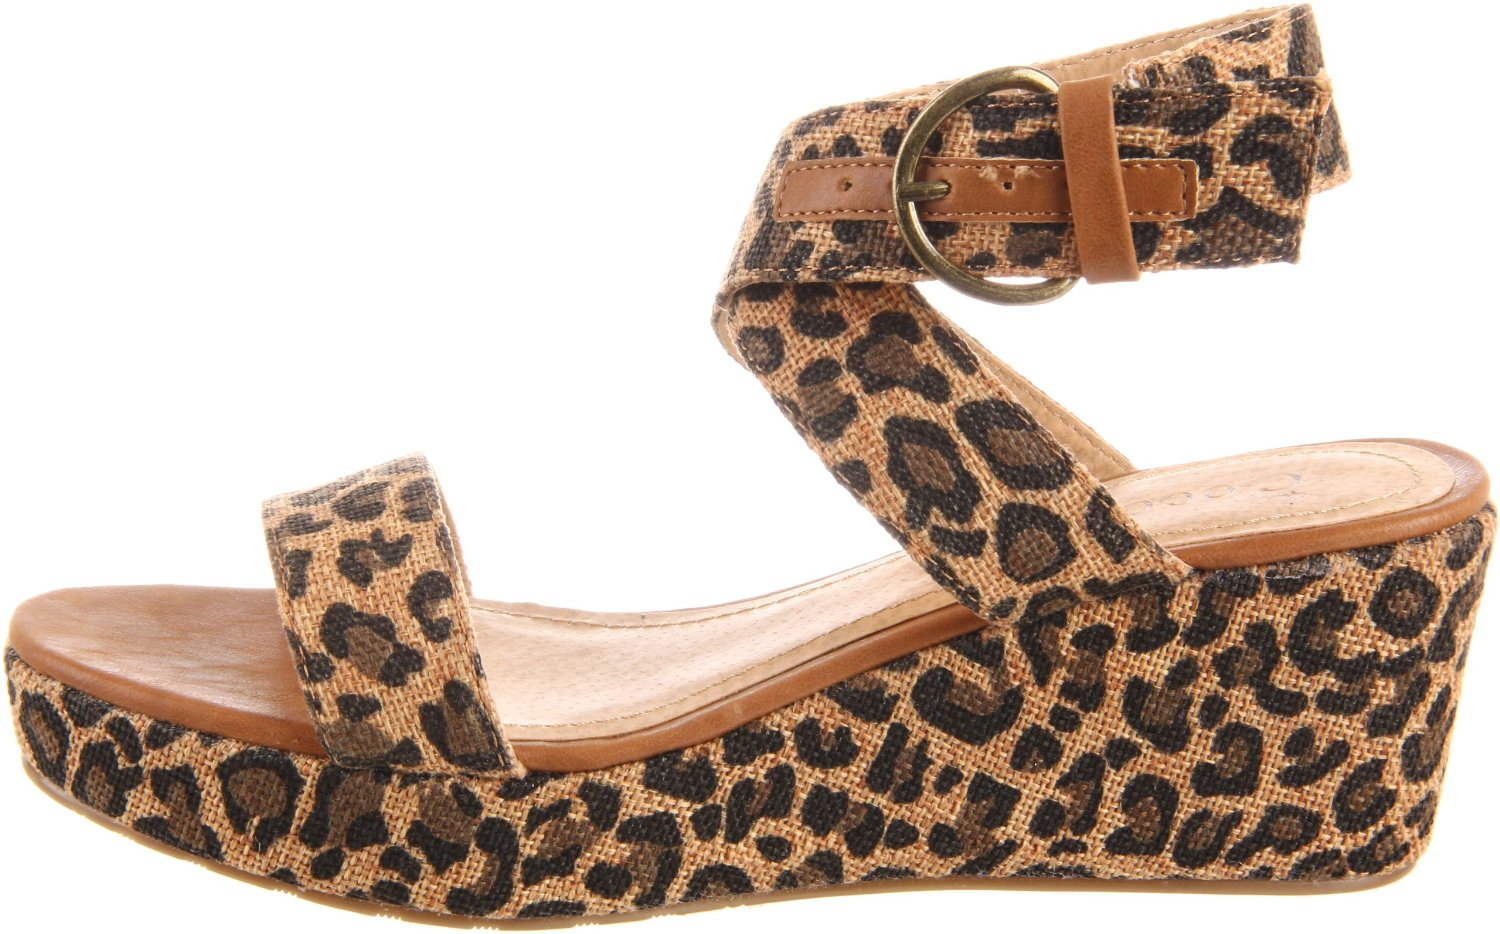 Vegan leopard print wedge sandals